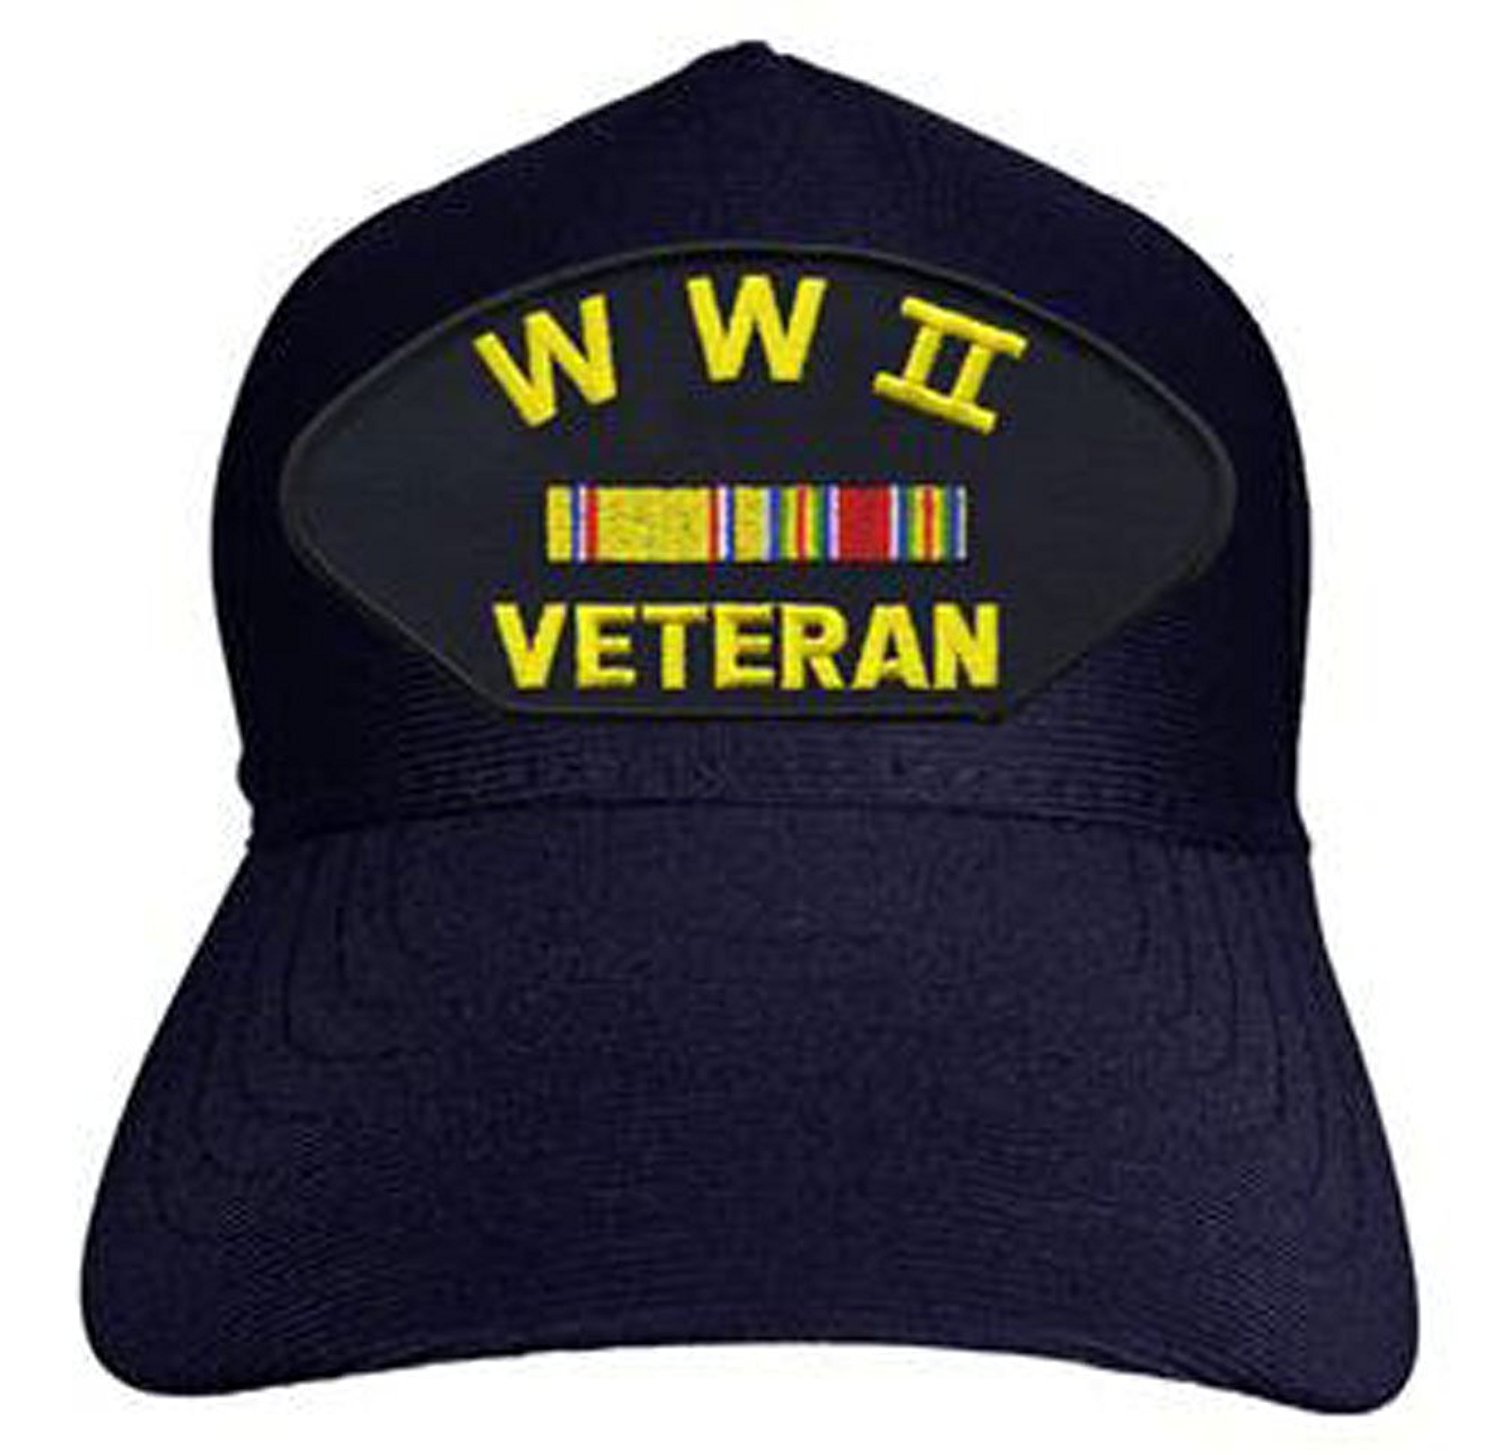 World War II Veteran with Ribbons Baseball Cap. Navy Blue...